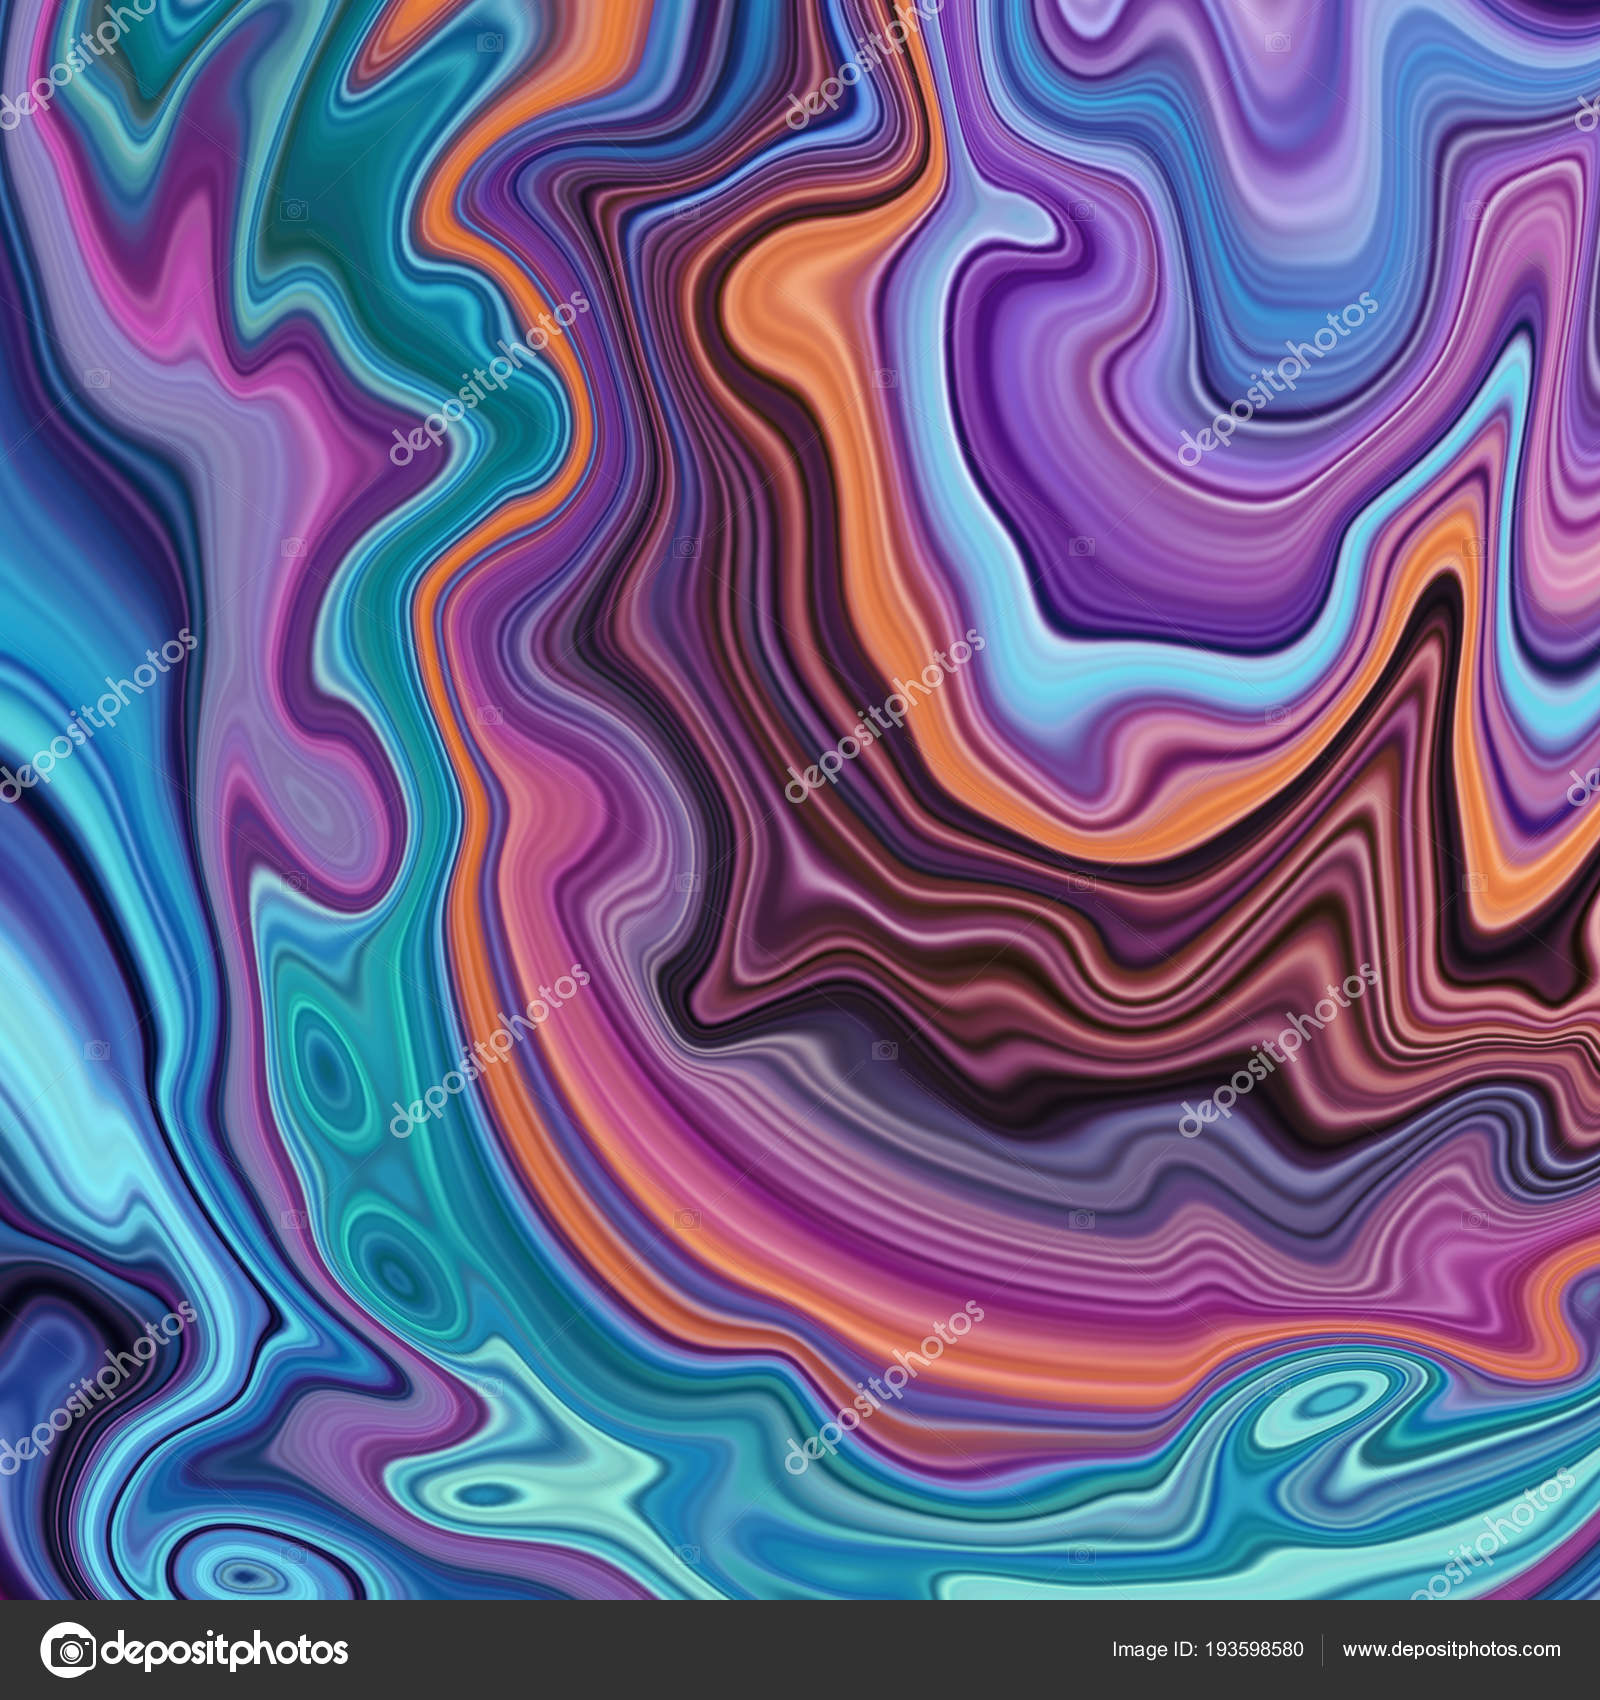 Most Inspiring Wallpaper Marble Neon - depositphotos_193598580-stock-photo-abstract-neon-background-vivid-fluid  Perfect Image Reference_628668.jpg